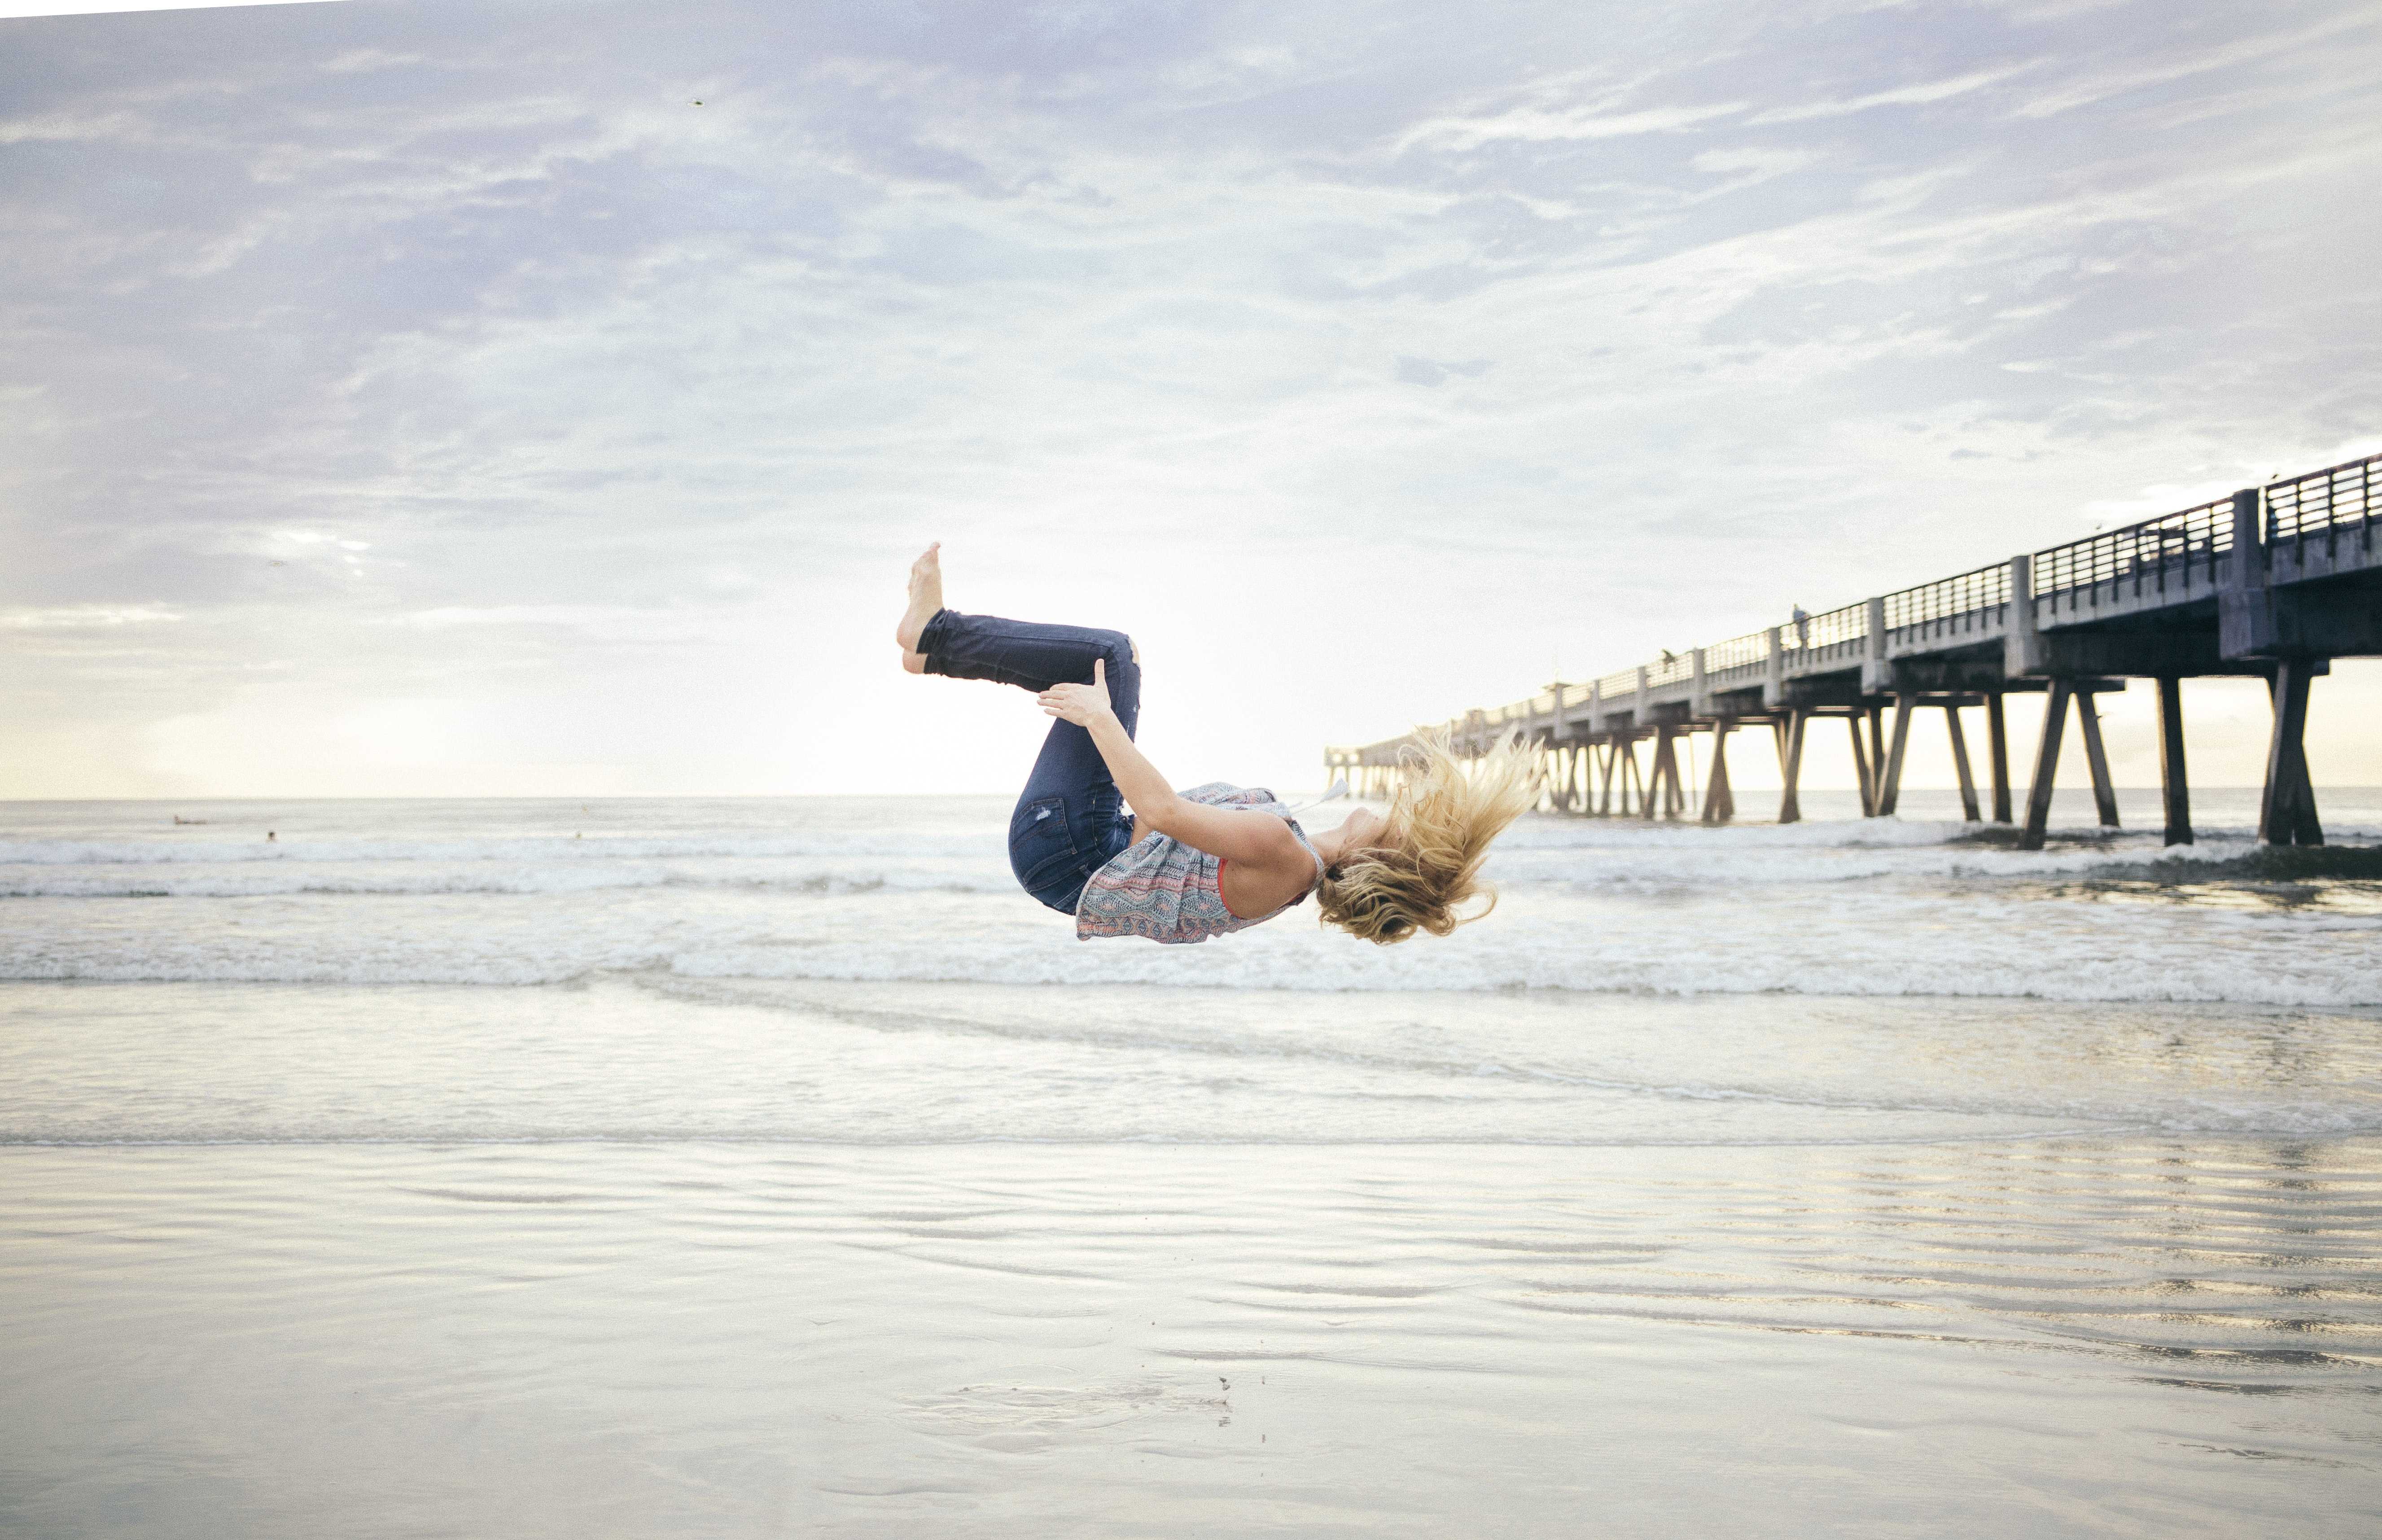 A woman doing a backflip at the beach.